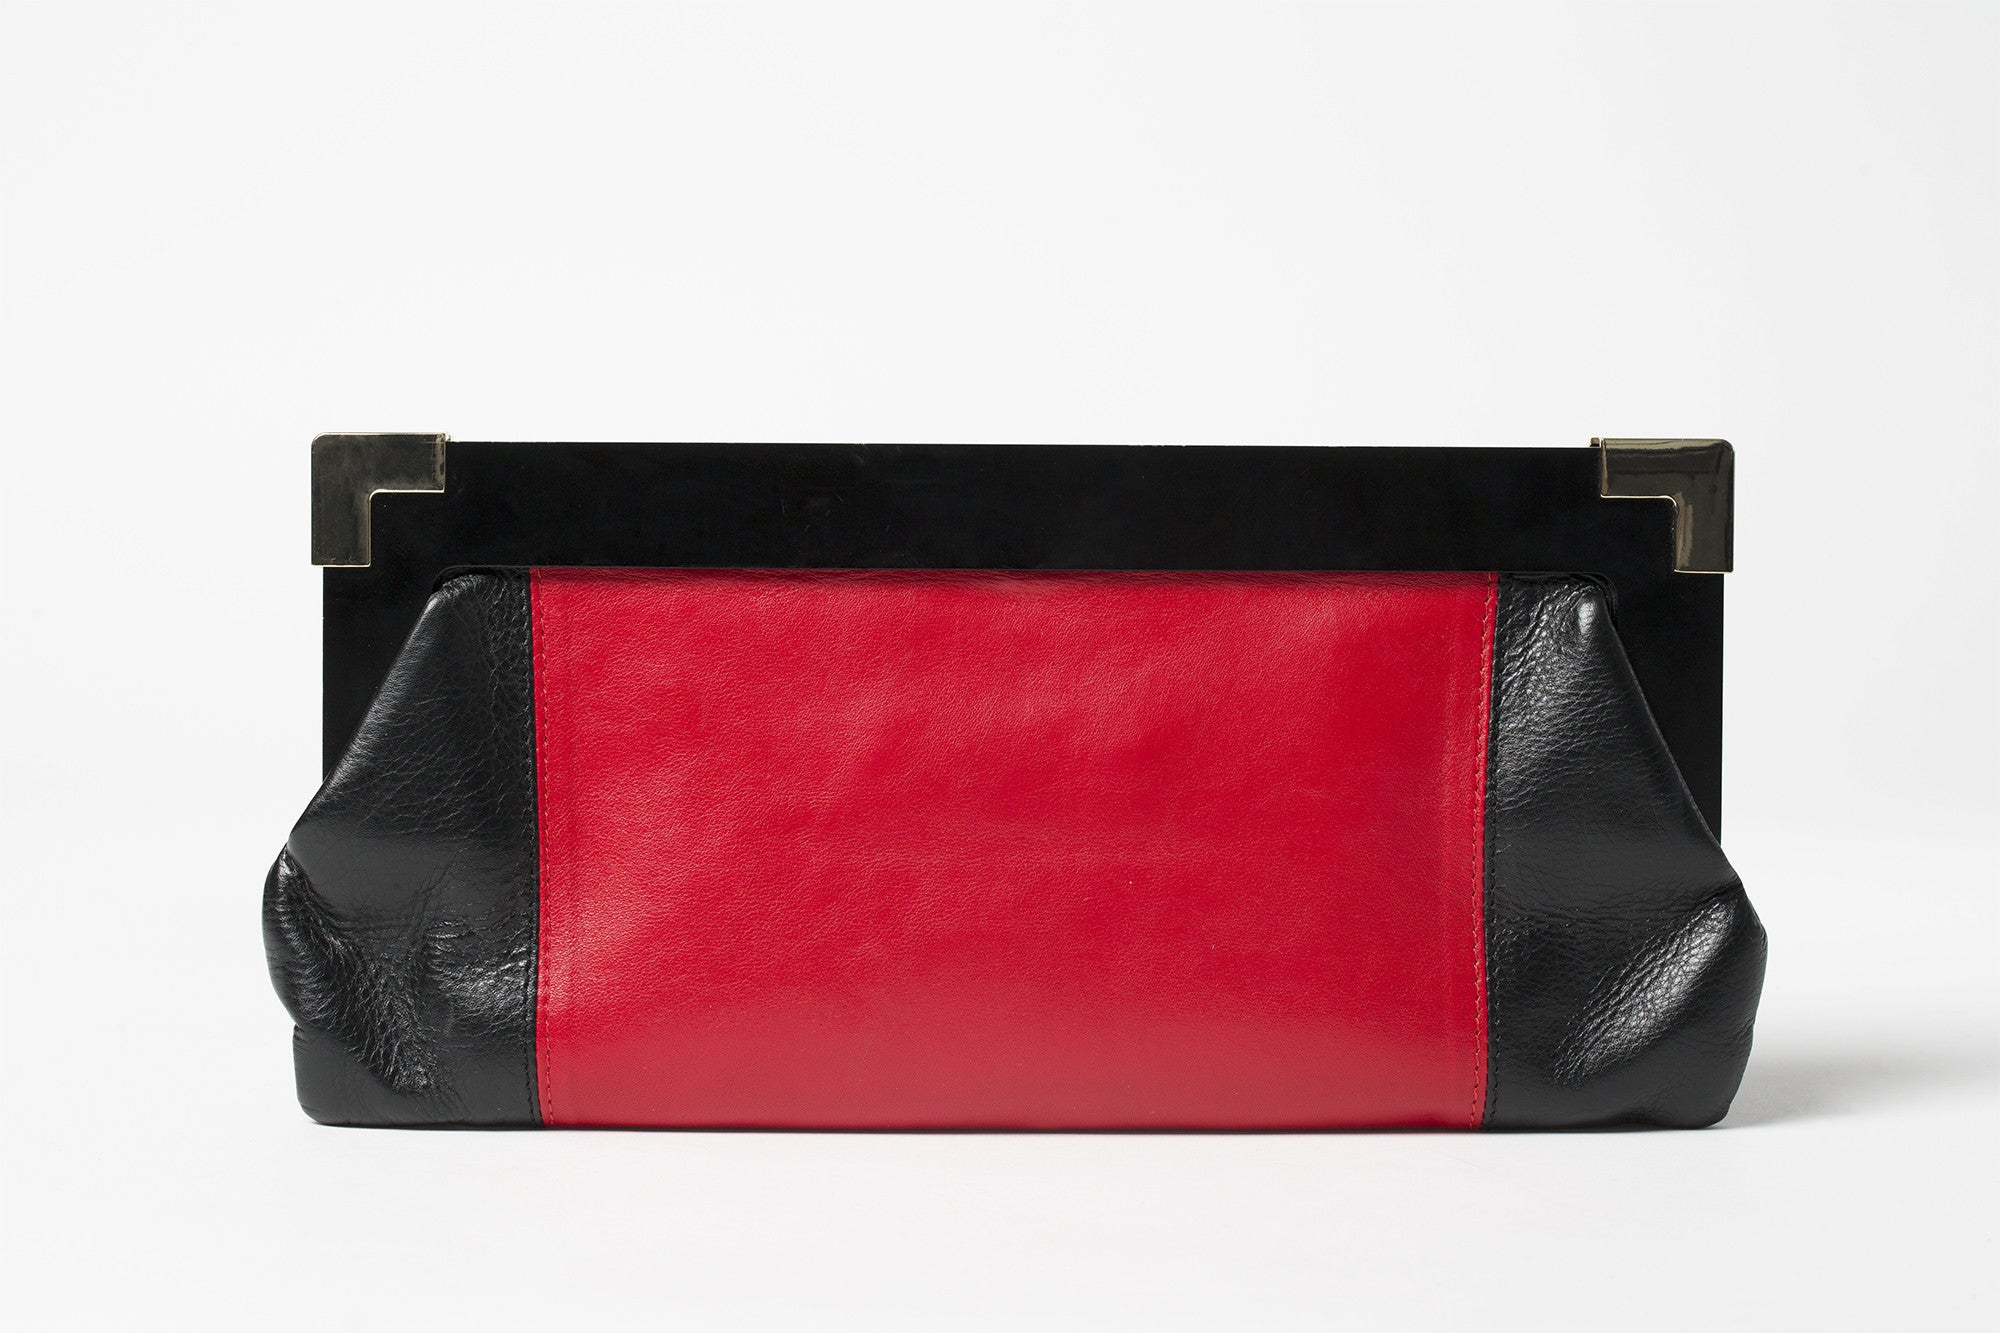 Will-Ahsi - Keri 2 Clutch in Red - Oluwa & Celestin